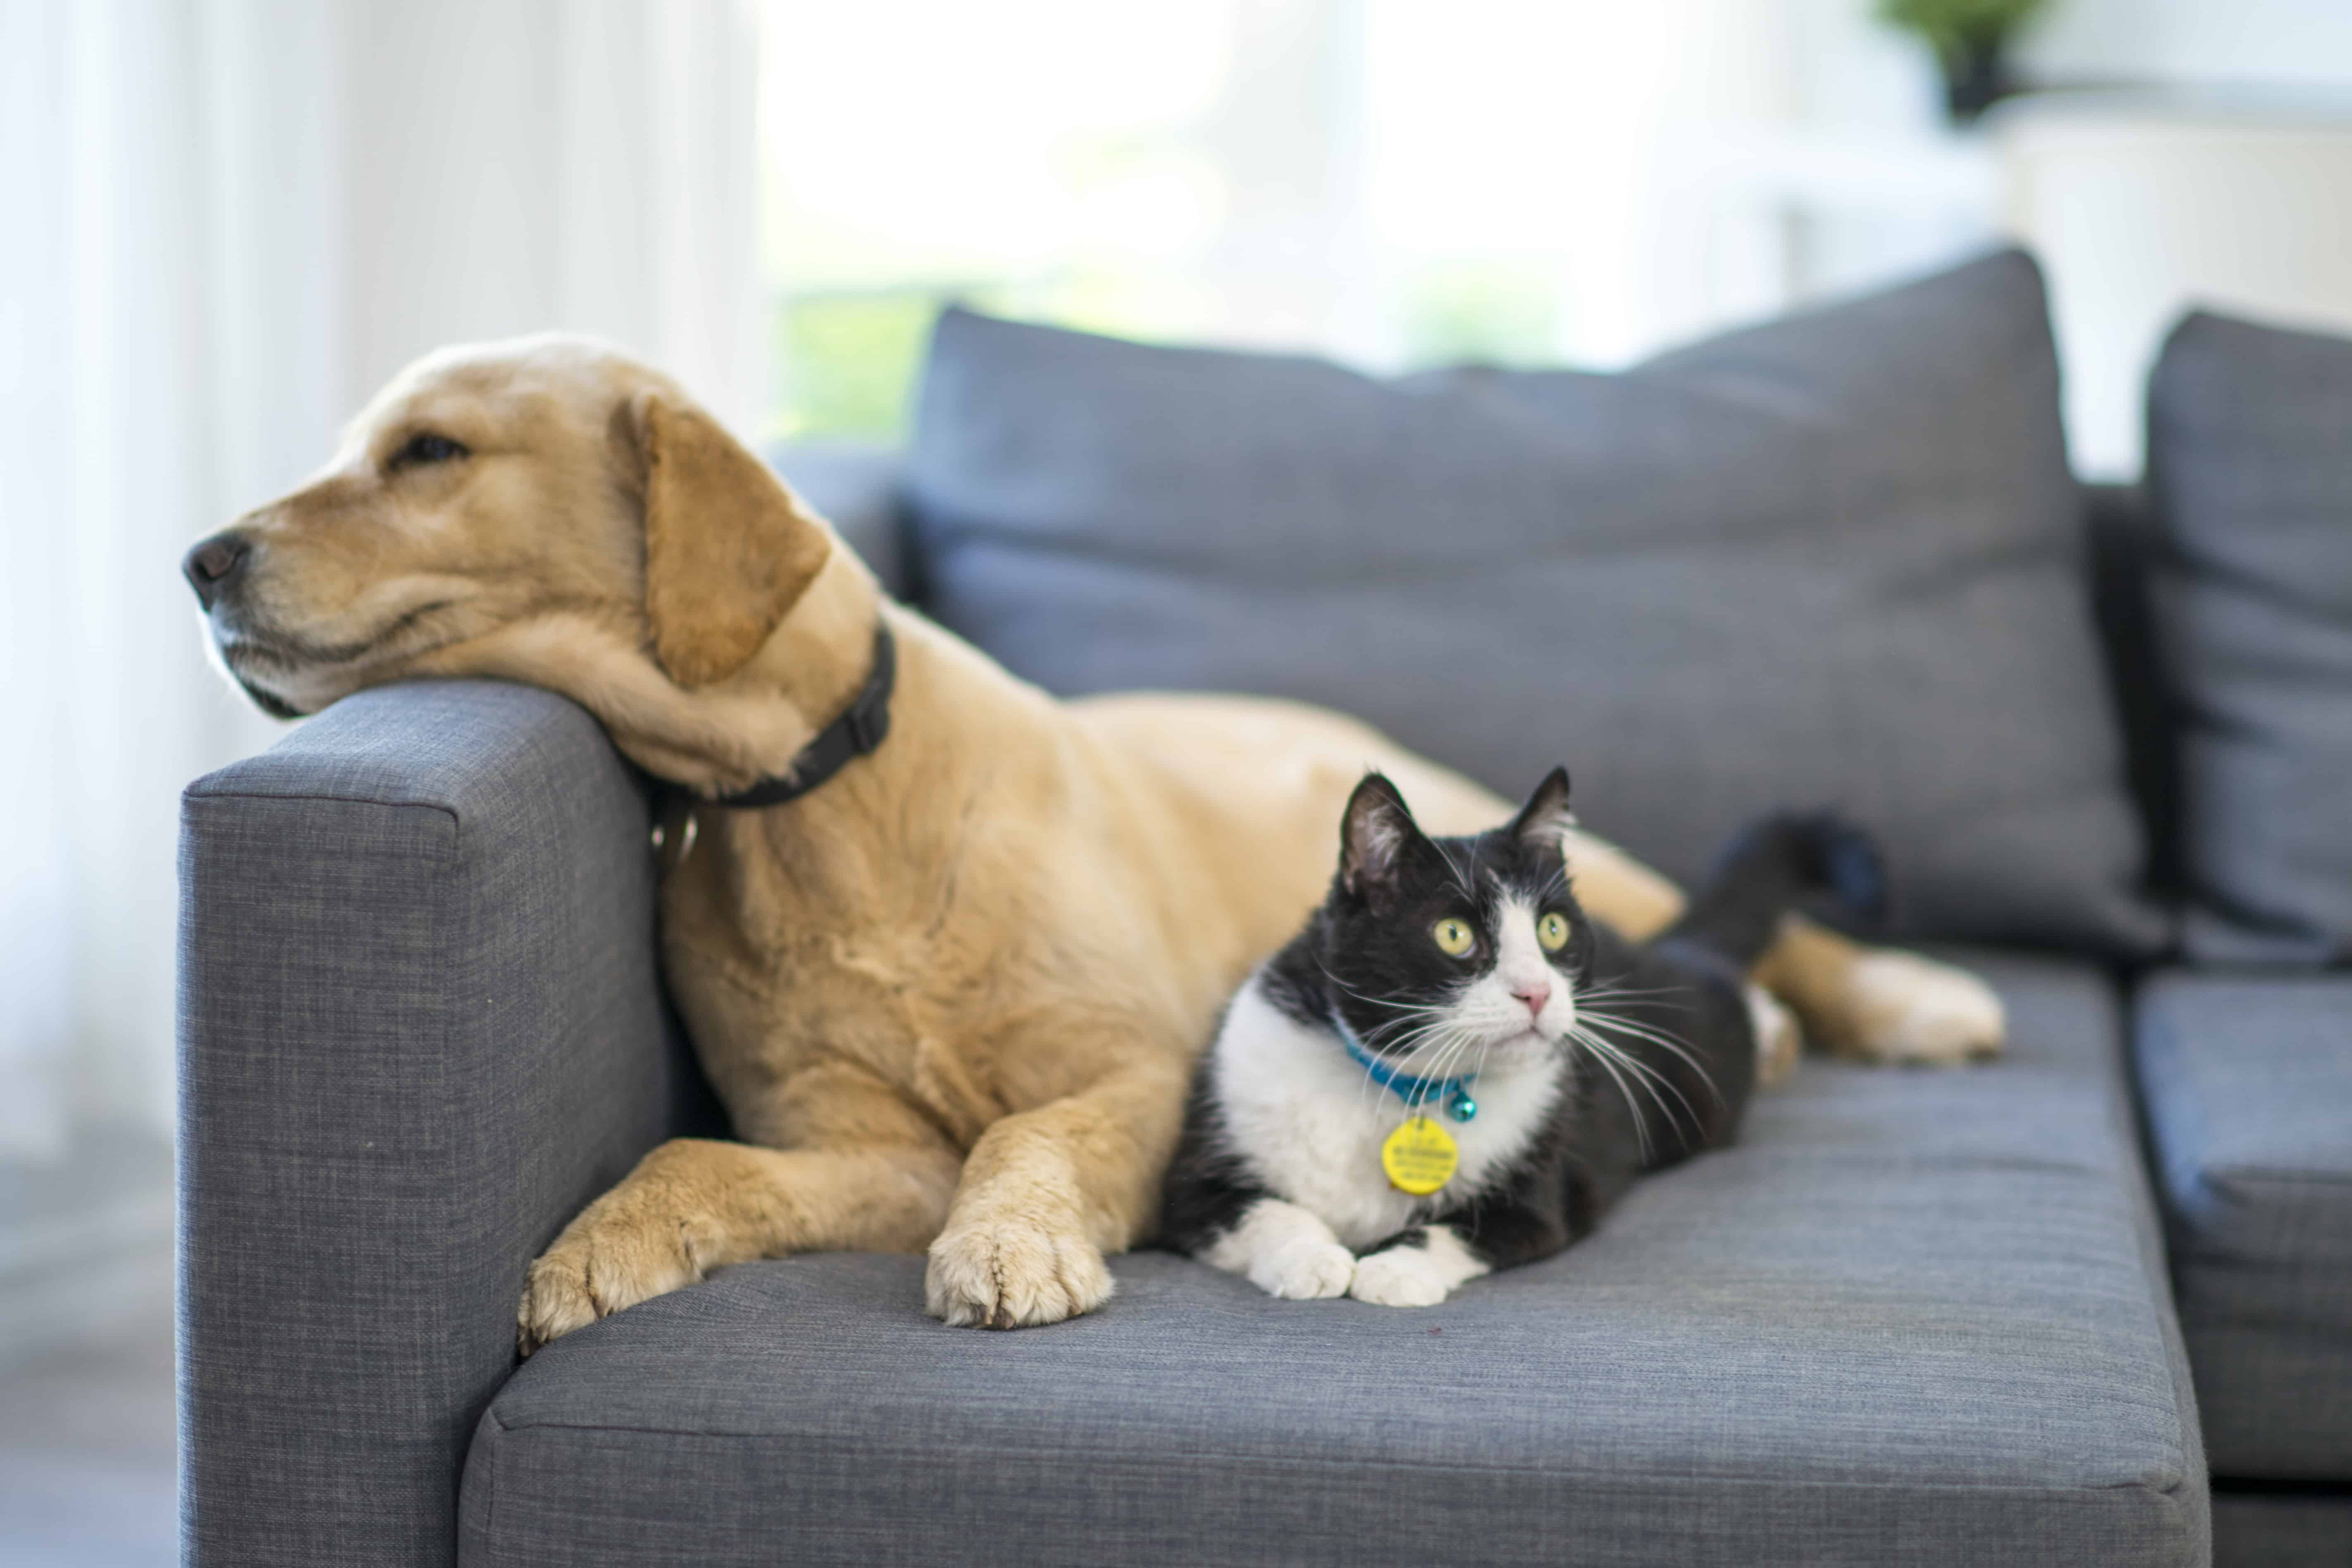 A young golden retriever dog and a black and white domestic cat are lying on a sofa in the living room.